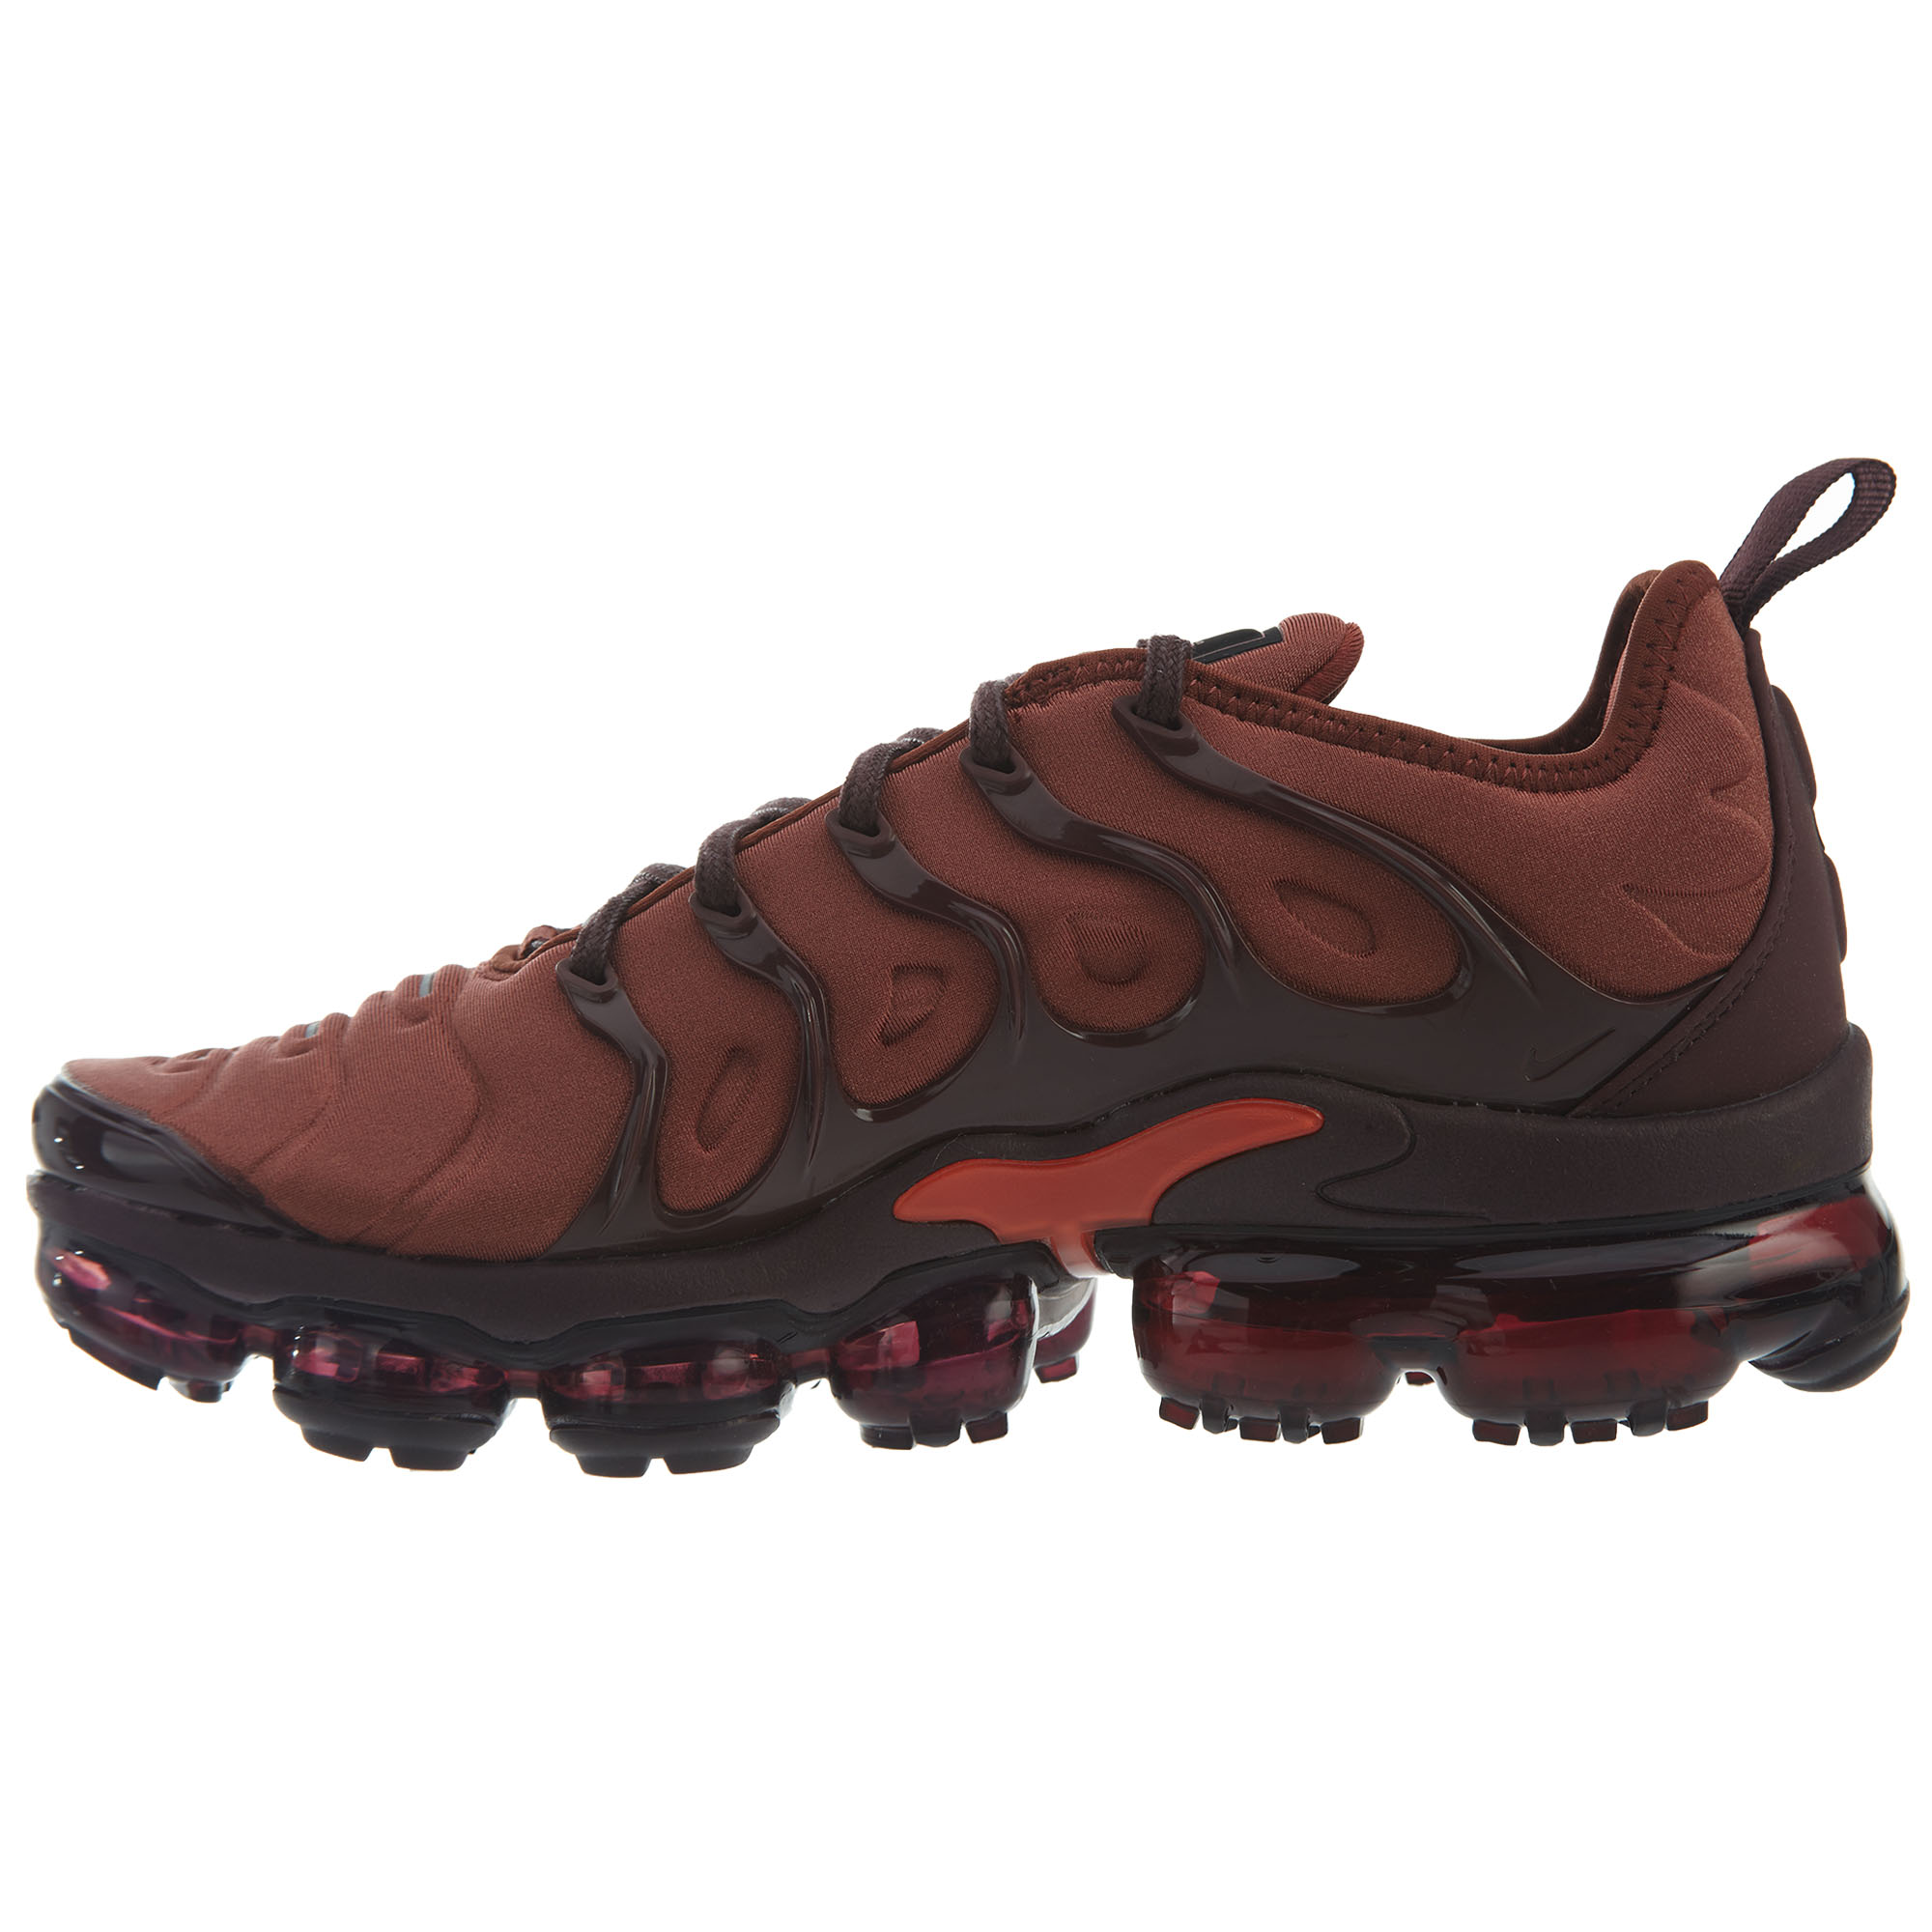 1caf6bb4b49 Nike Womens Air Vapormax Plus Sneakers AO4550-201